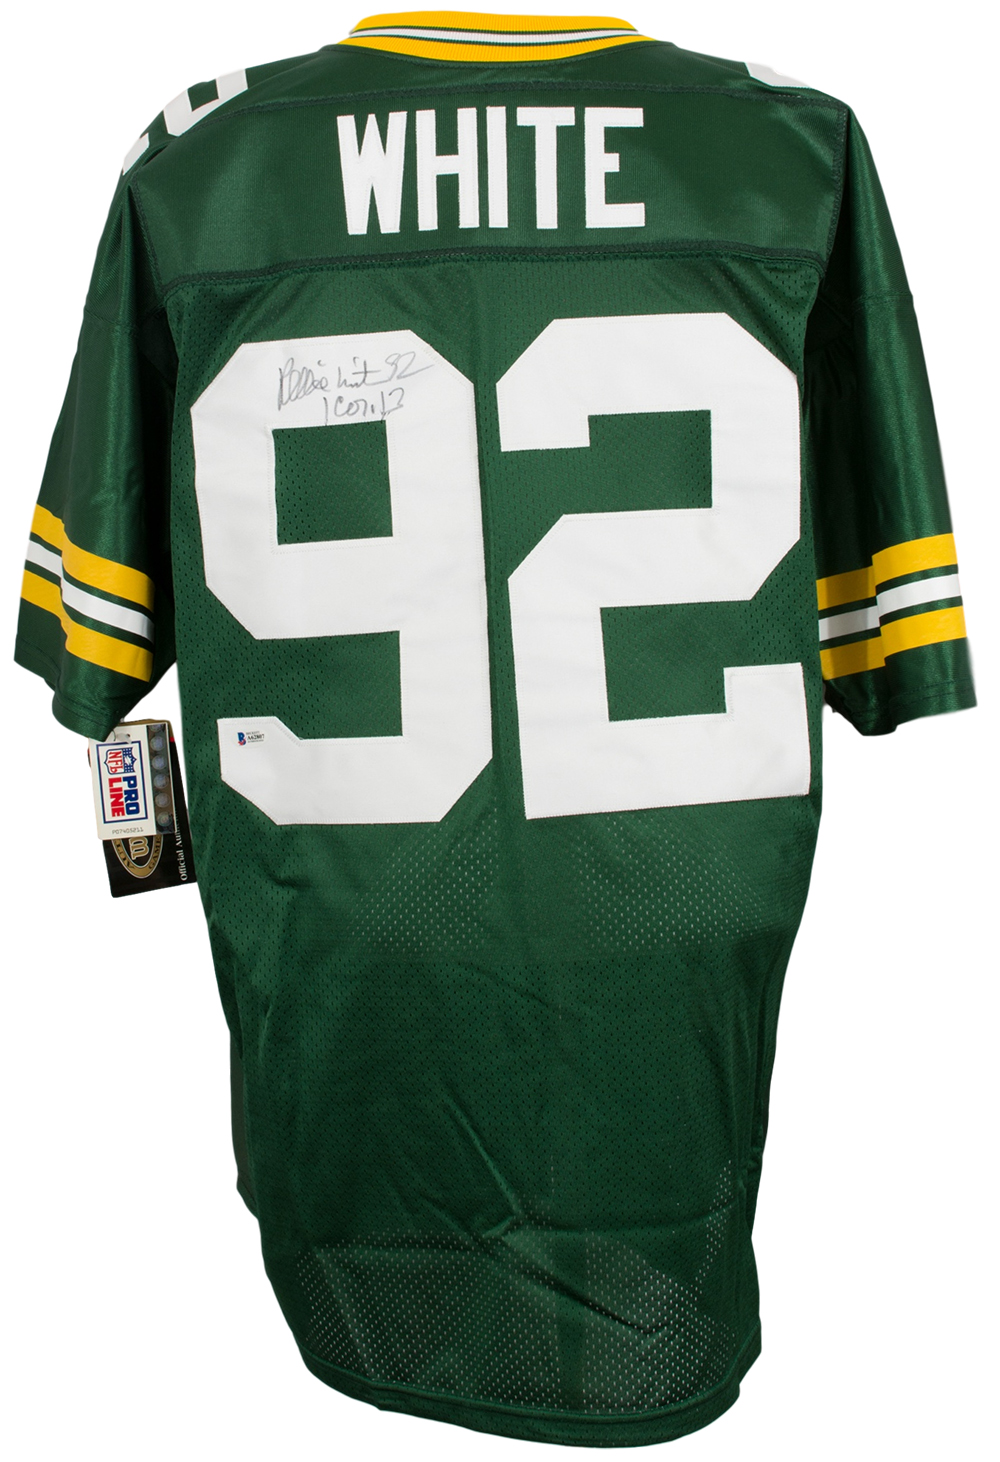 new concept a4a50 26ed4 Details about Reggie White Signed Authentic Wilson Green Bay Packers  Football Jersey Insc. BAS